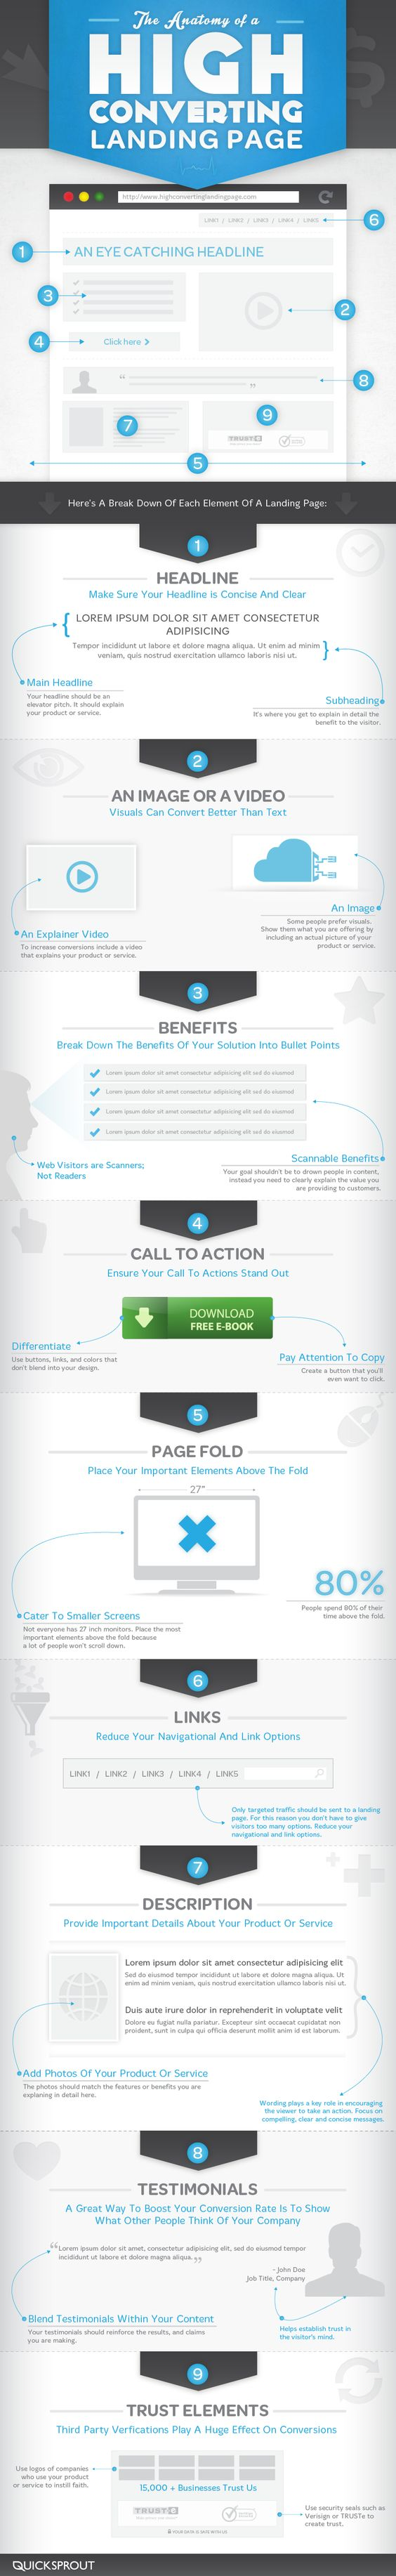 The Anatomy of a High Converting Landing Page [Infographics] -- [Web Design] [Web Development] [Landing Pages] [Conversion] [Best-practice] #DigitalE45DK